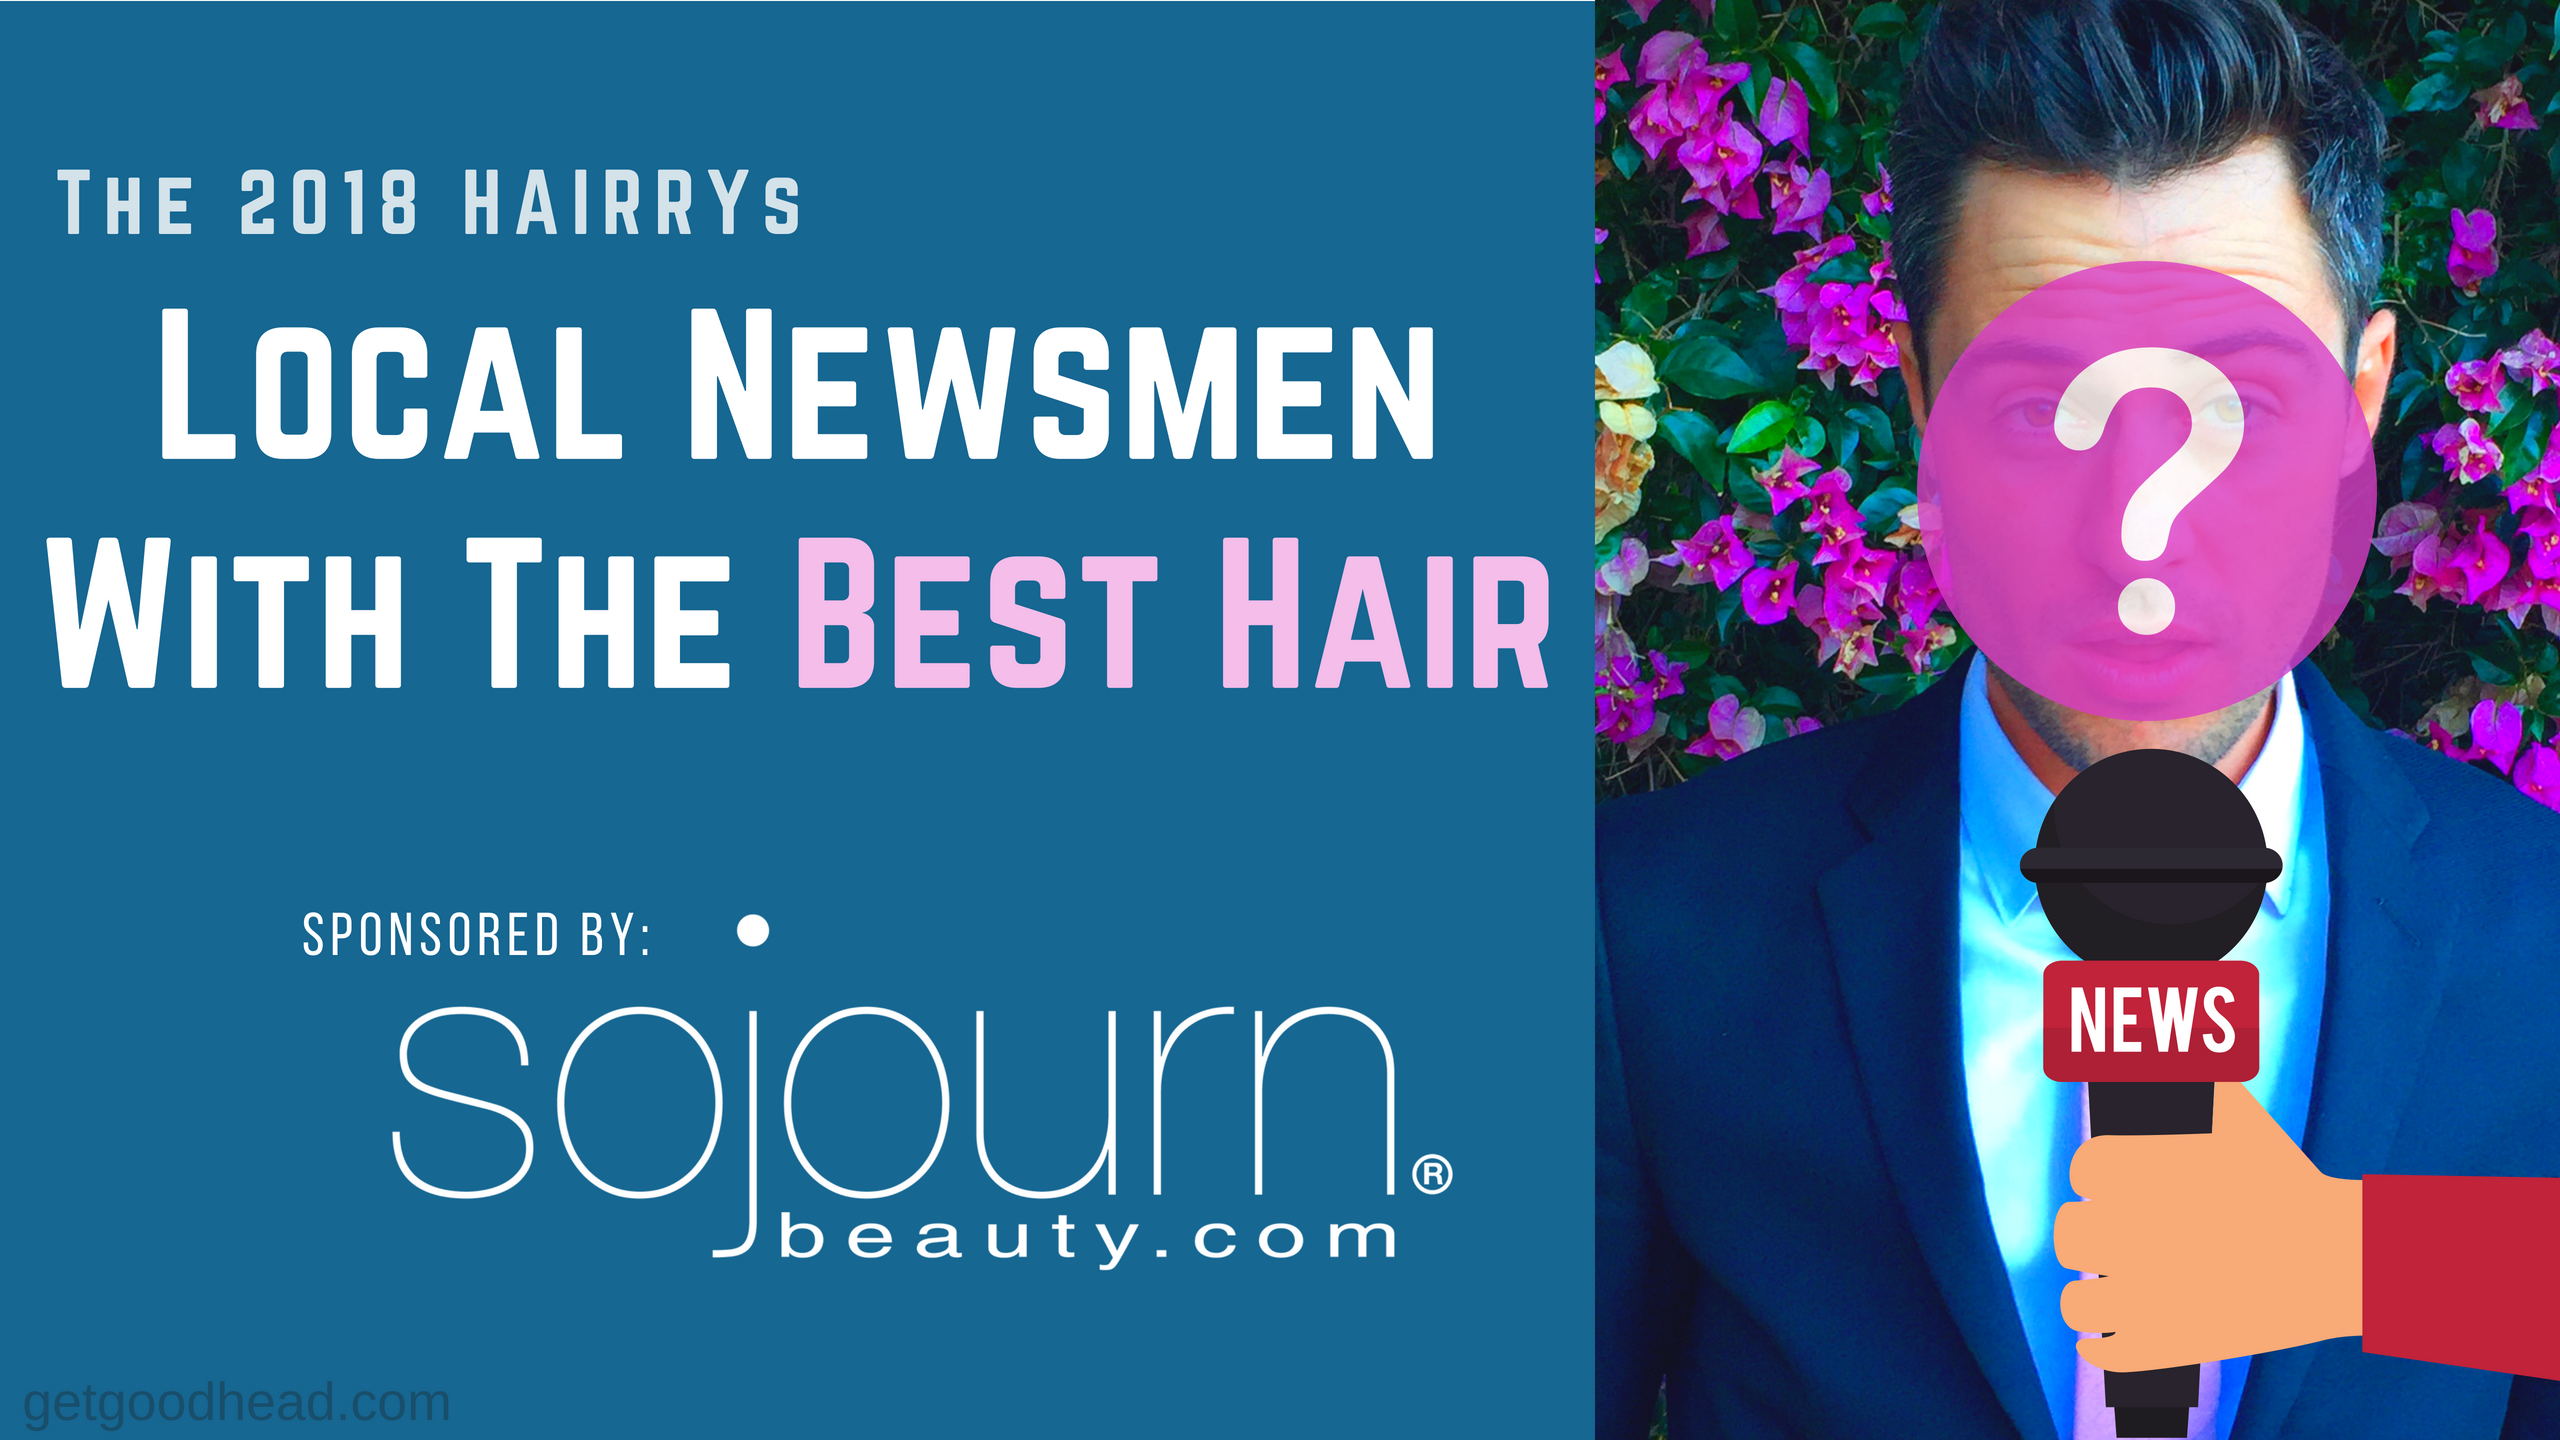 The HAIRRY Award's Local Newsmen Best Hair